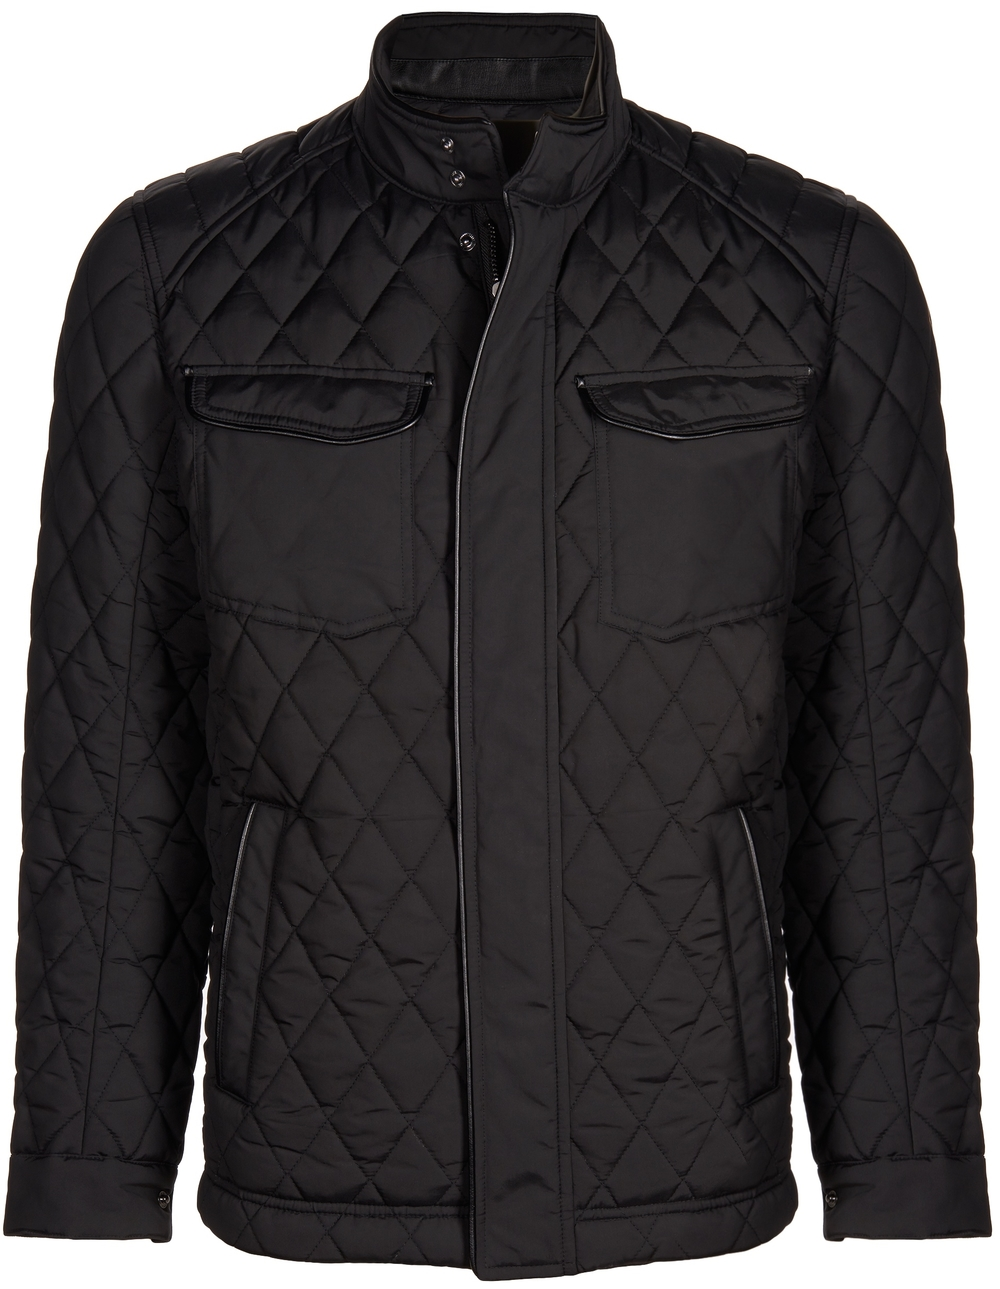 Tumi Stretch Quilted Jacket, $395